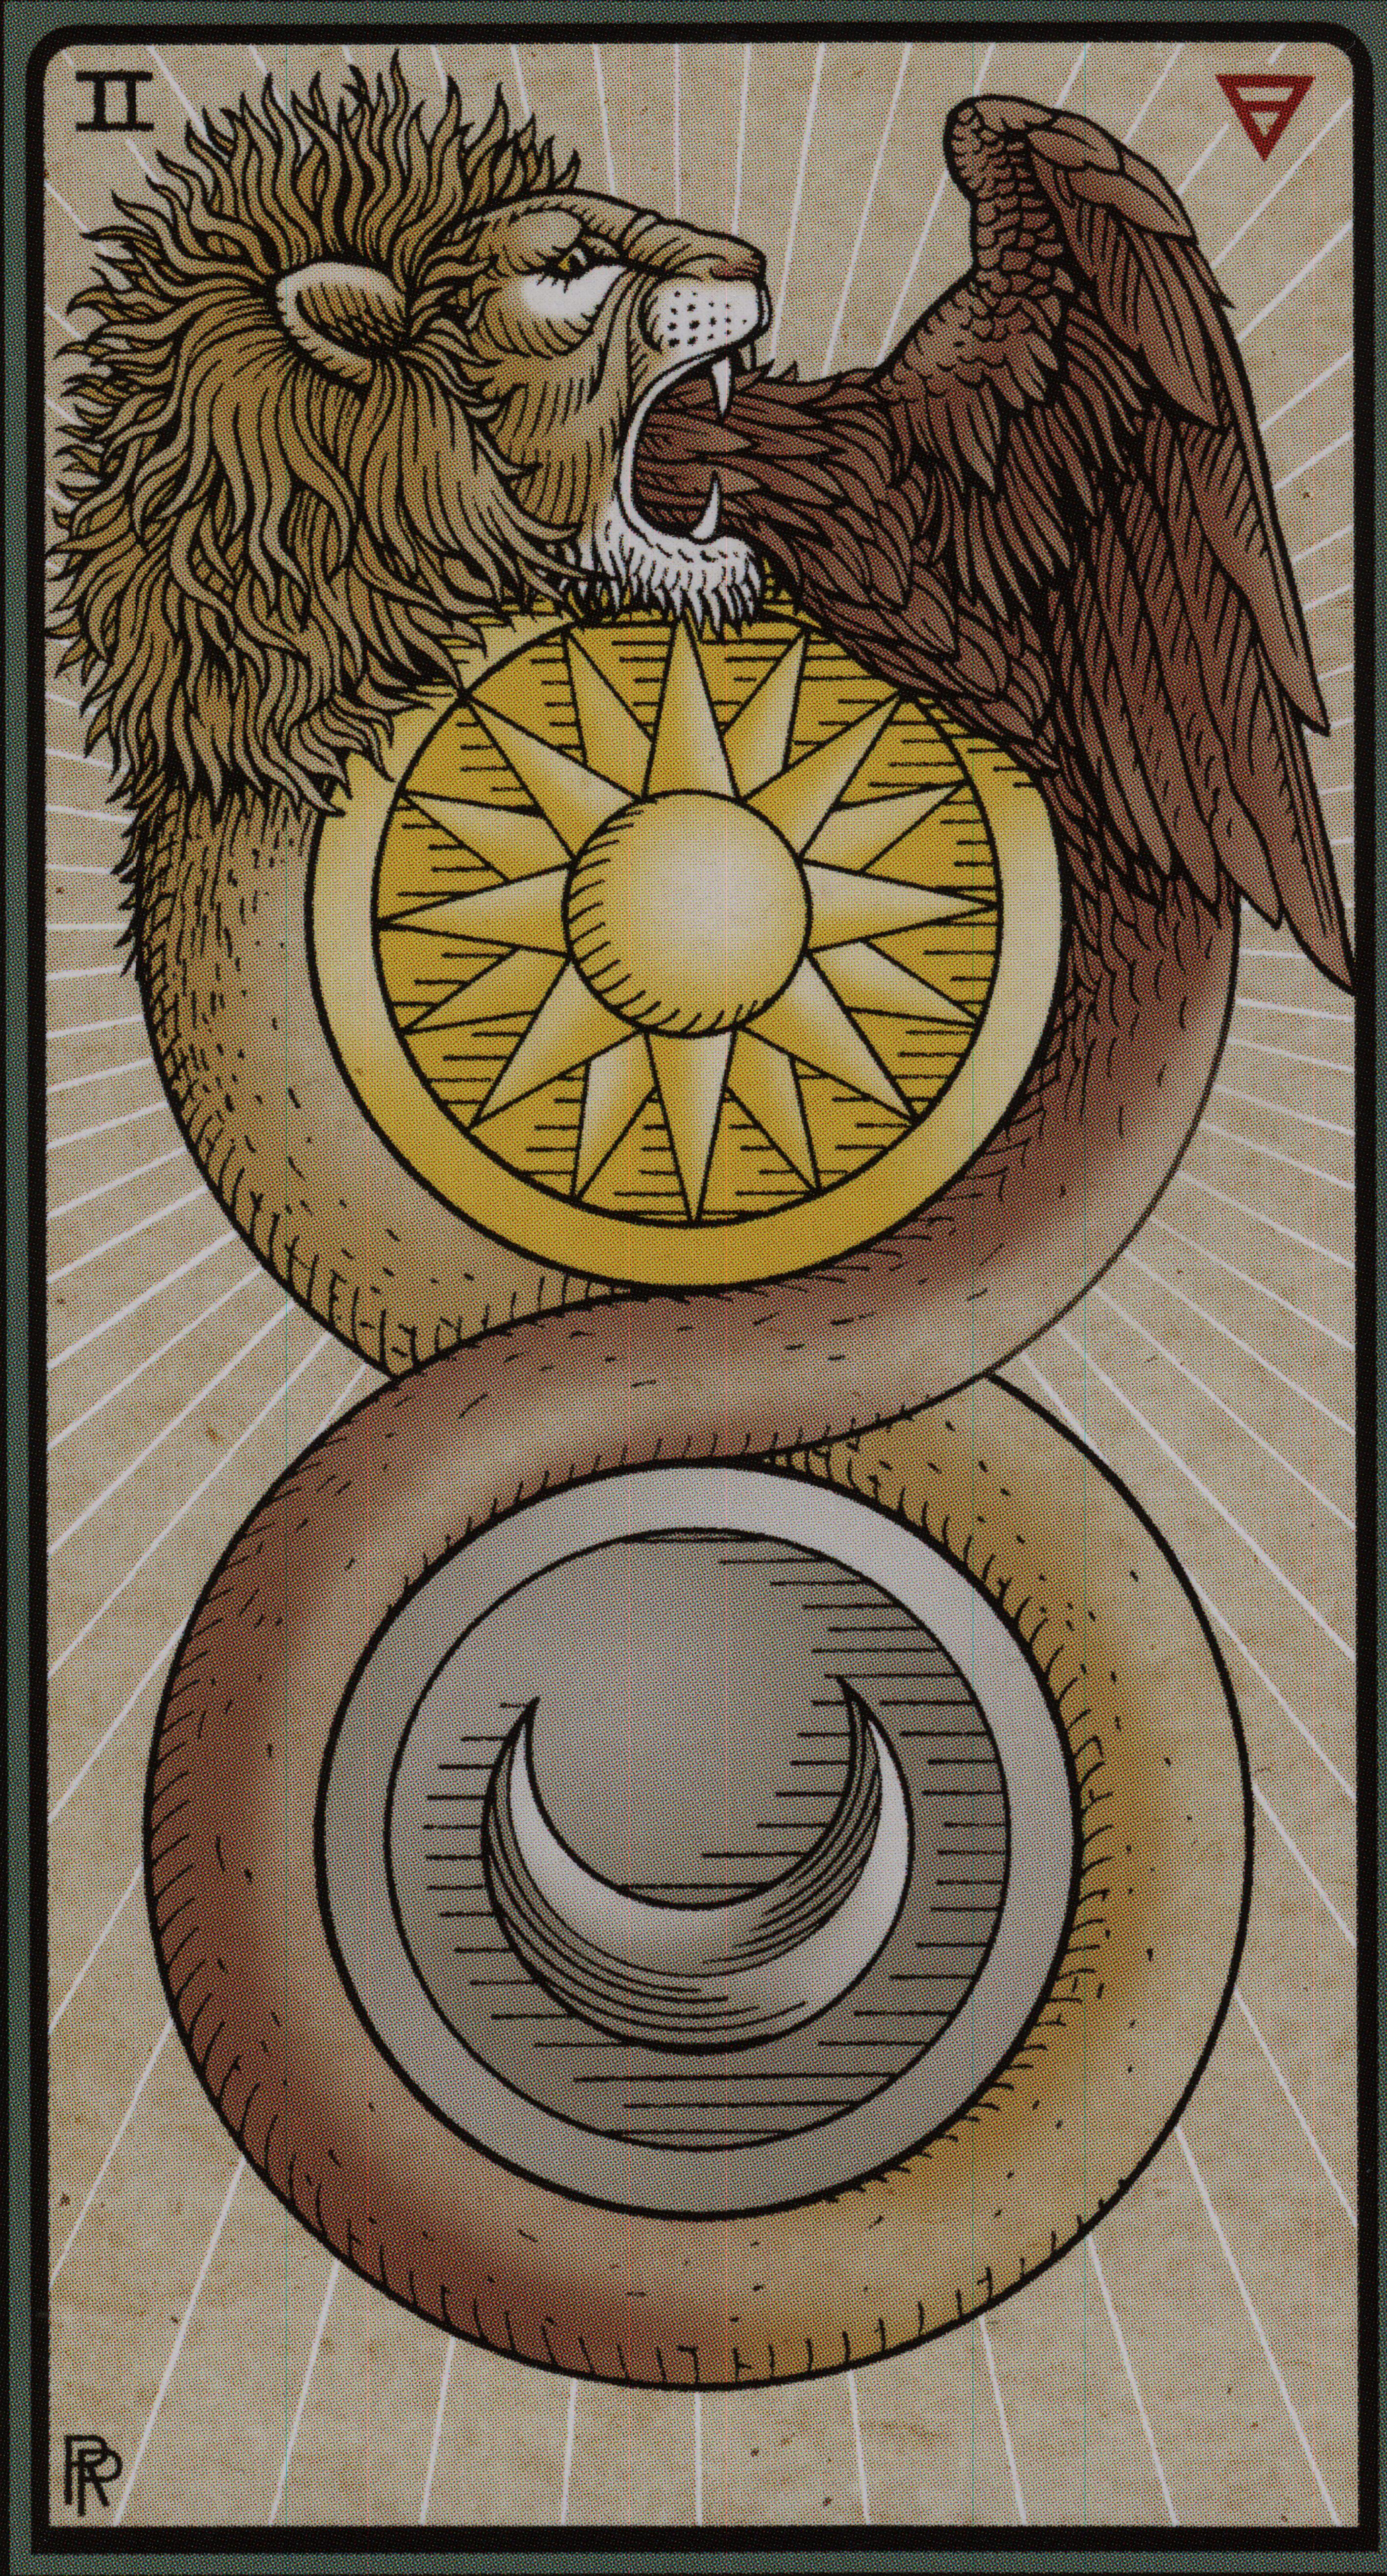 The Alchemical Tarot-The 2 of Coins